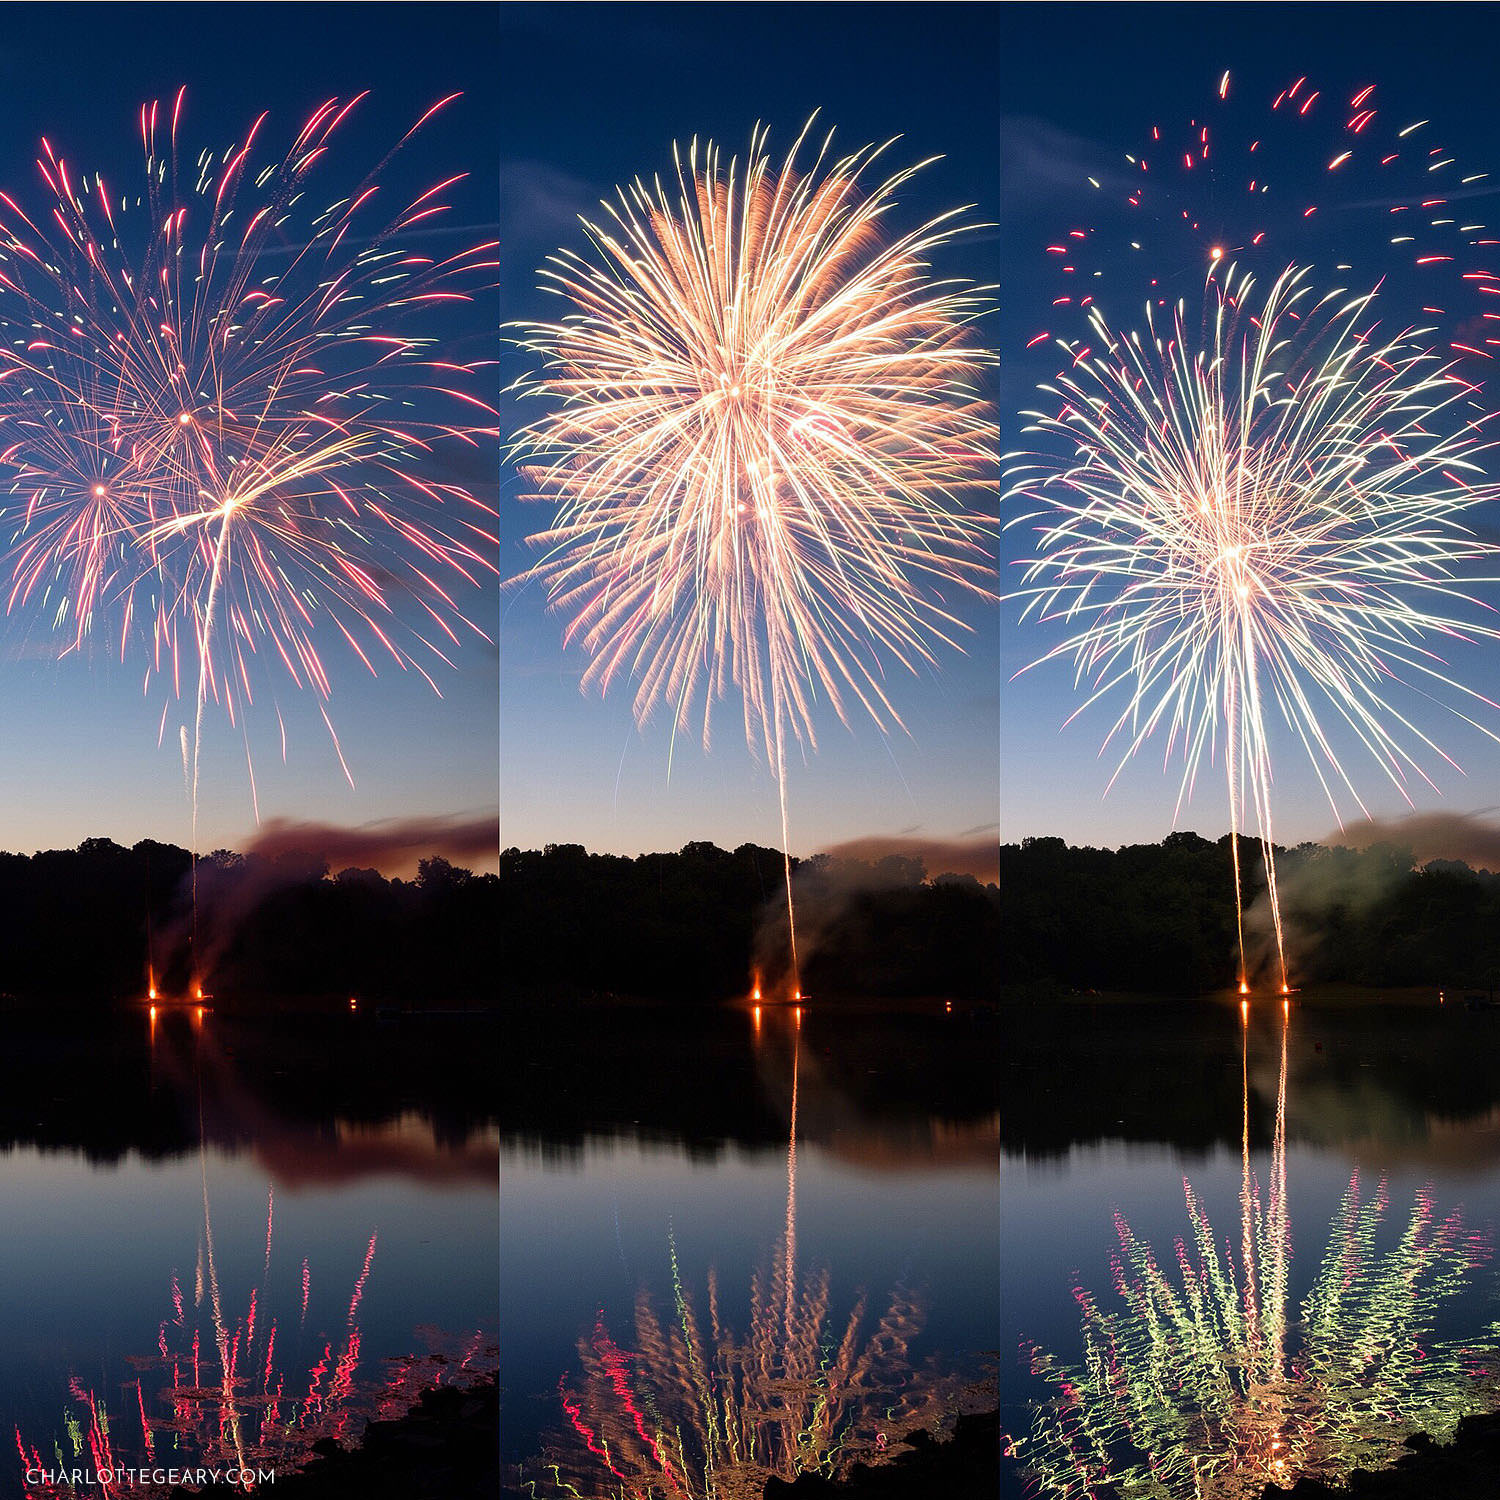 Fireworks at Lake Fairfax in Reston, Virginia